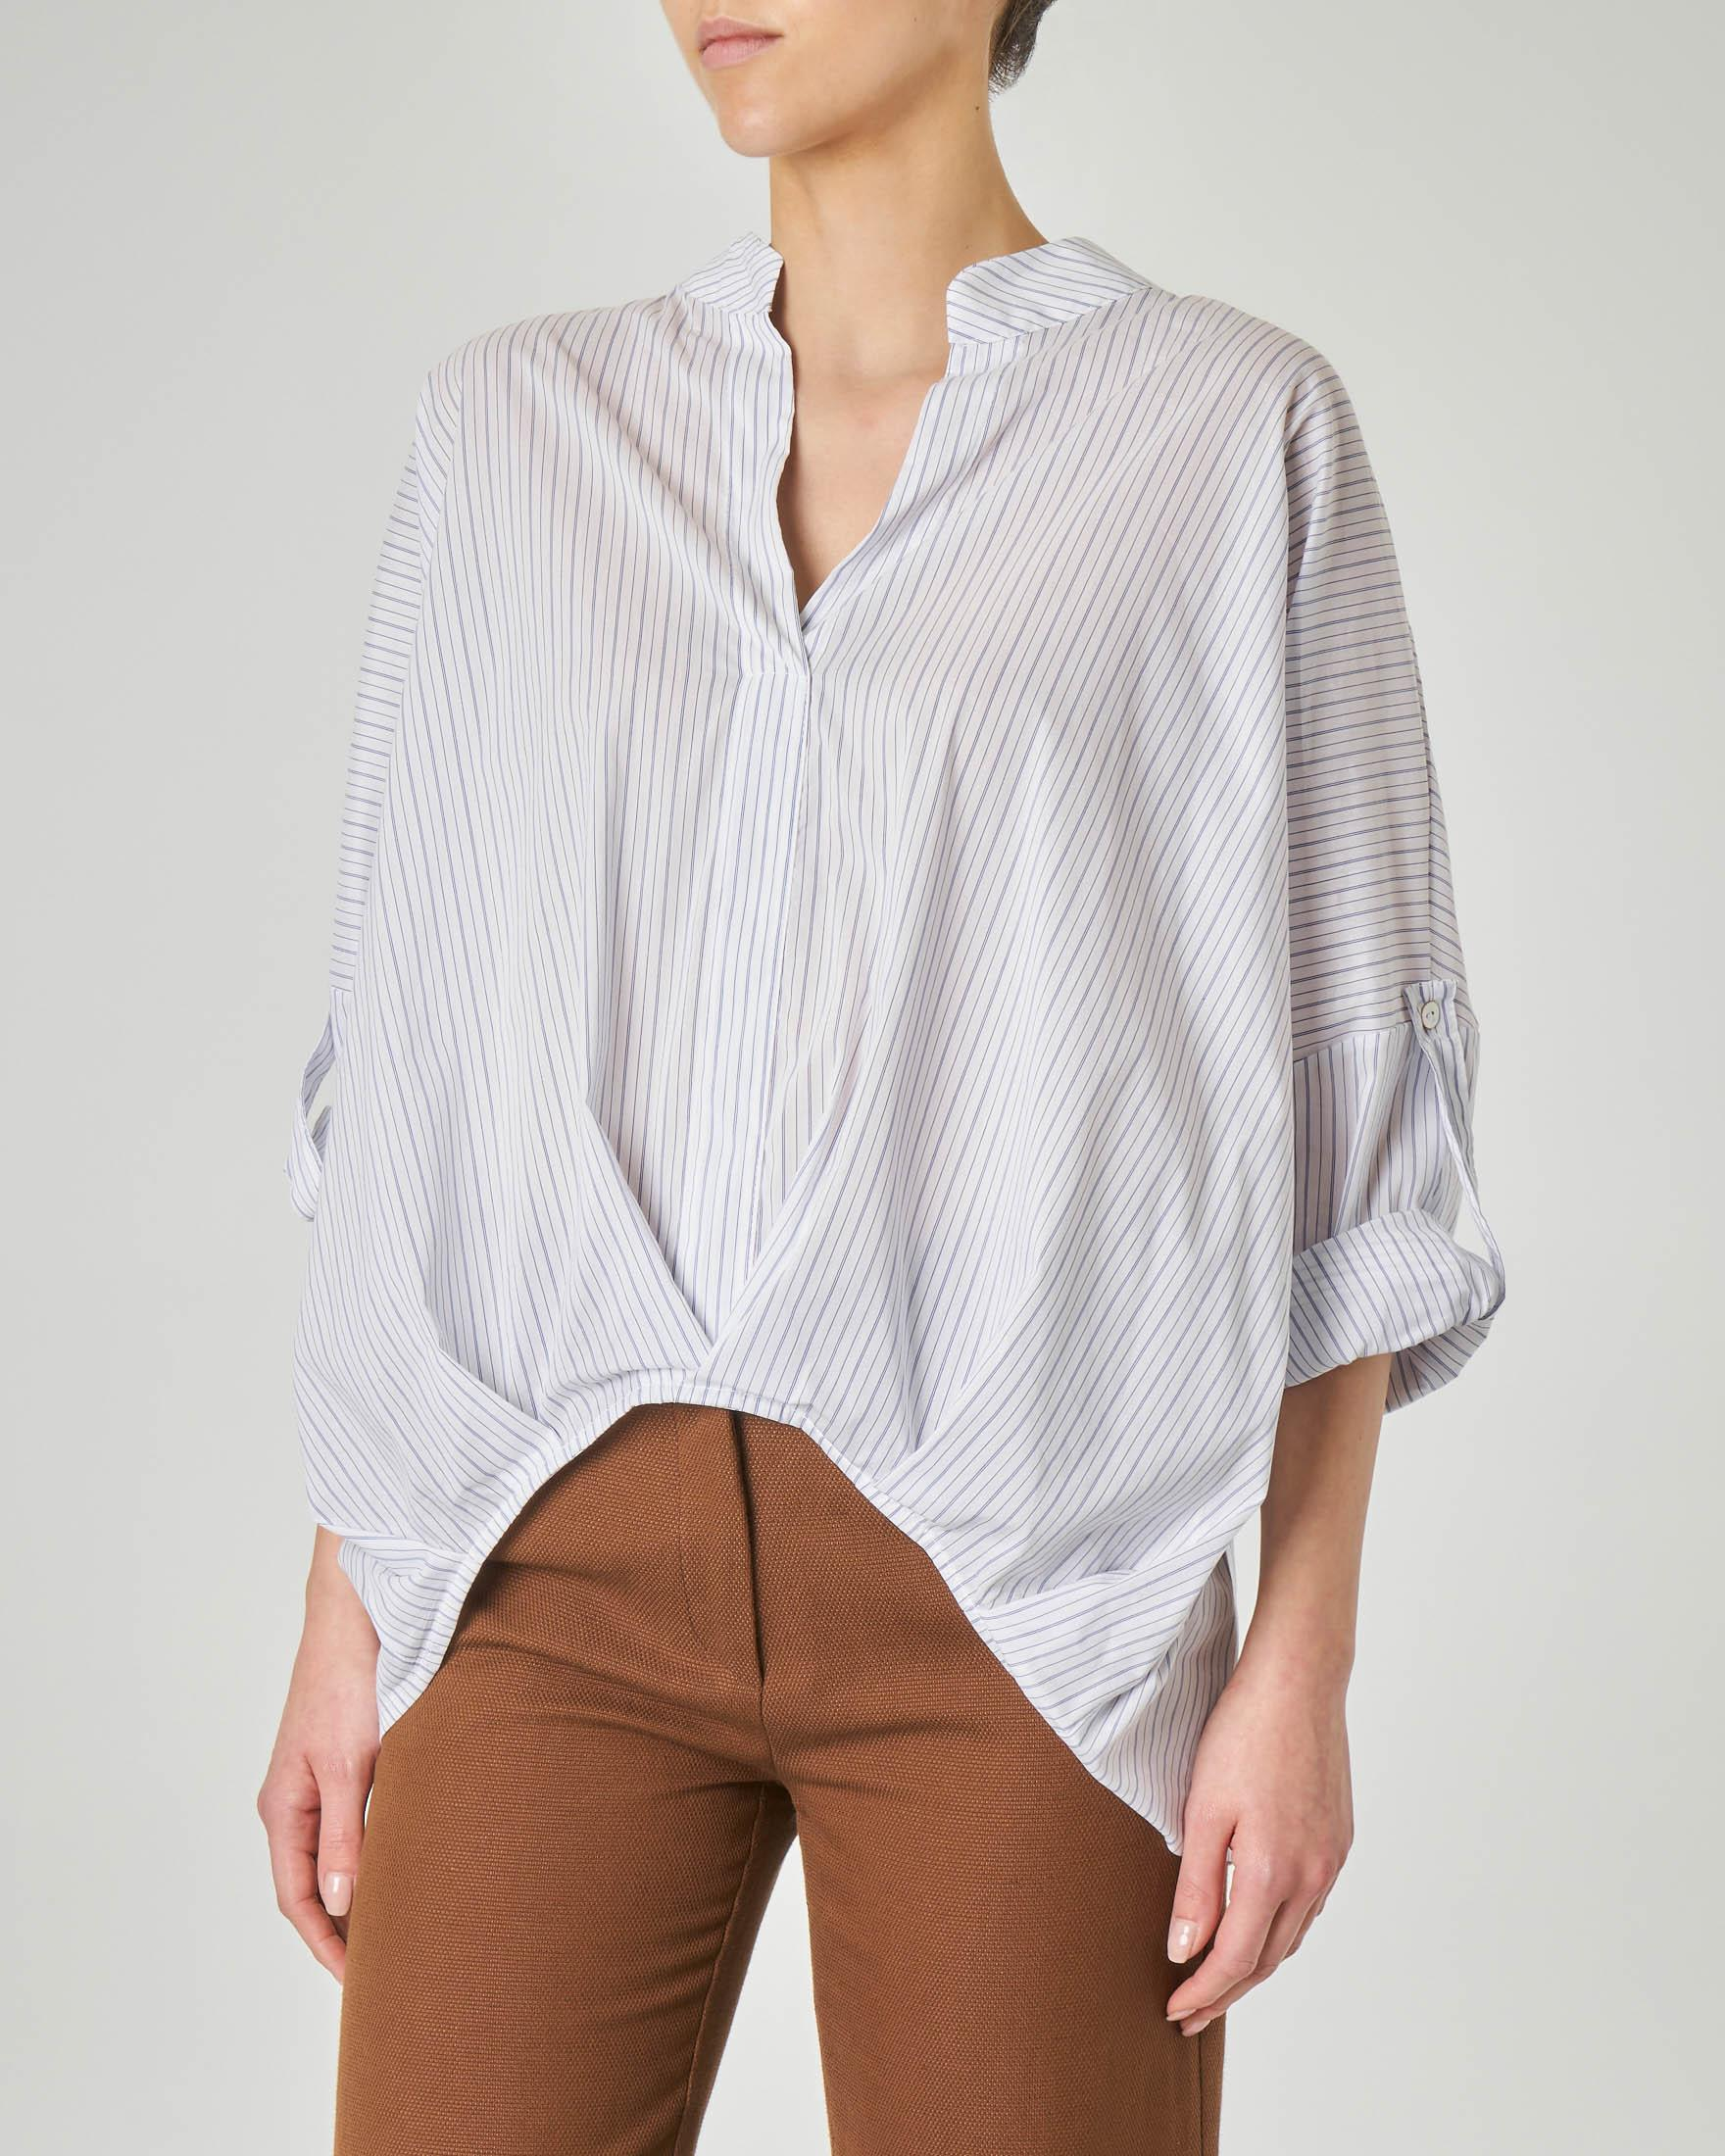 Camicia bianca over in misto cotone a righe con colletto alto e scollo a V